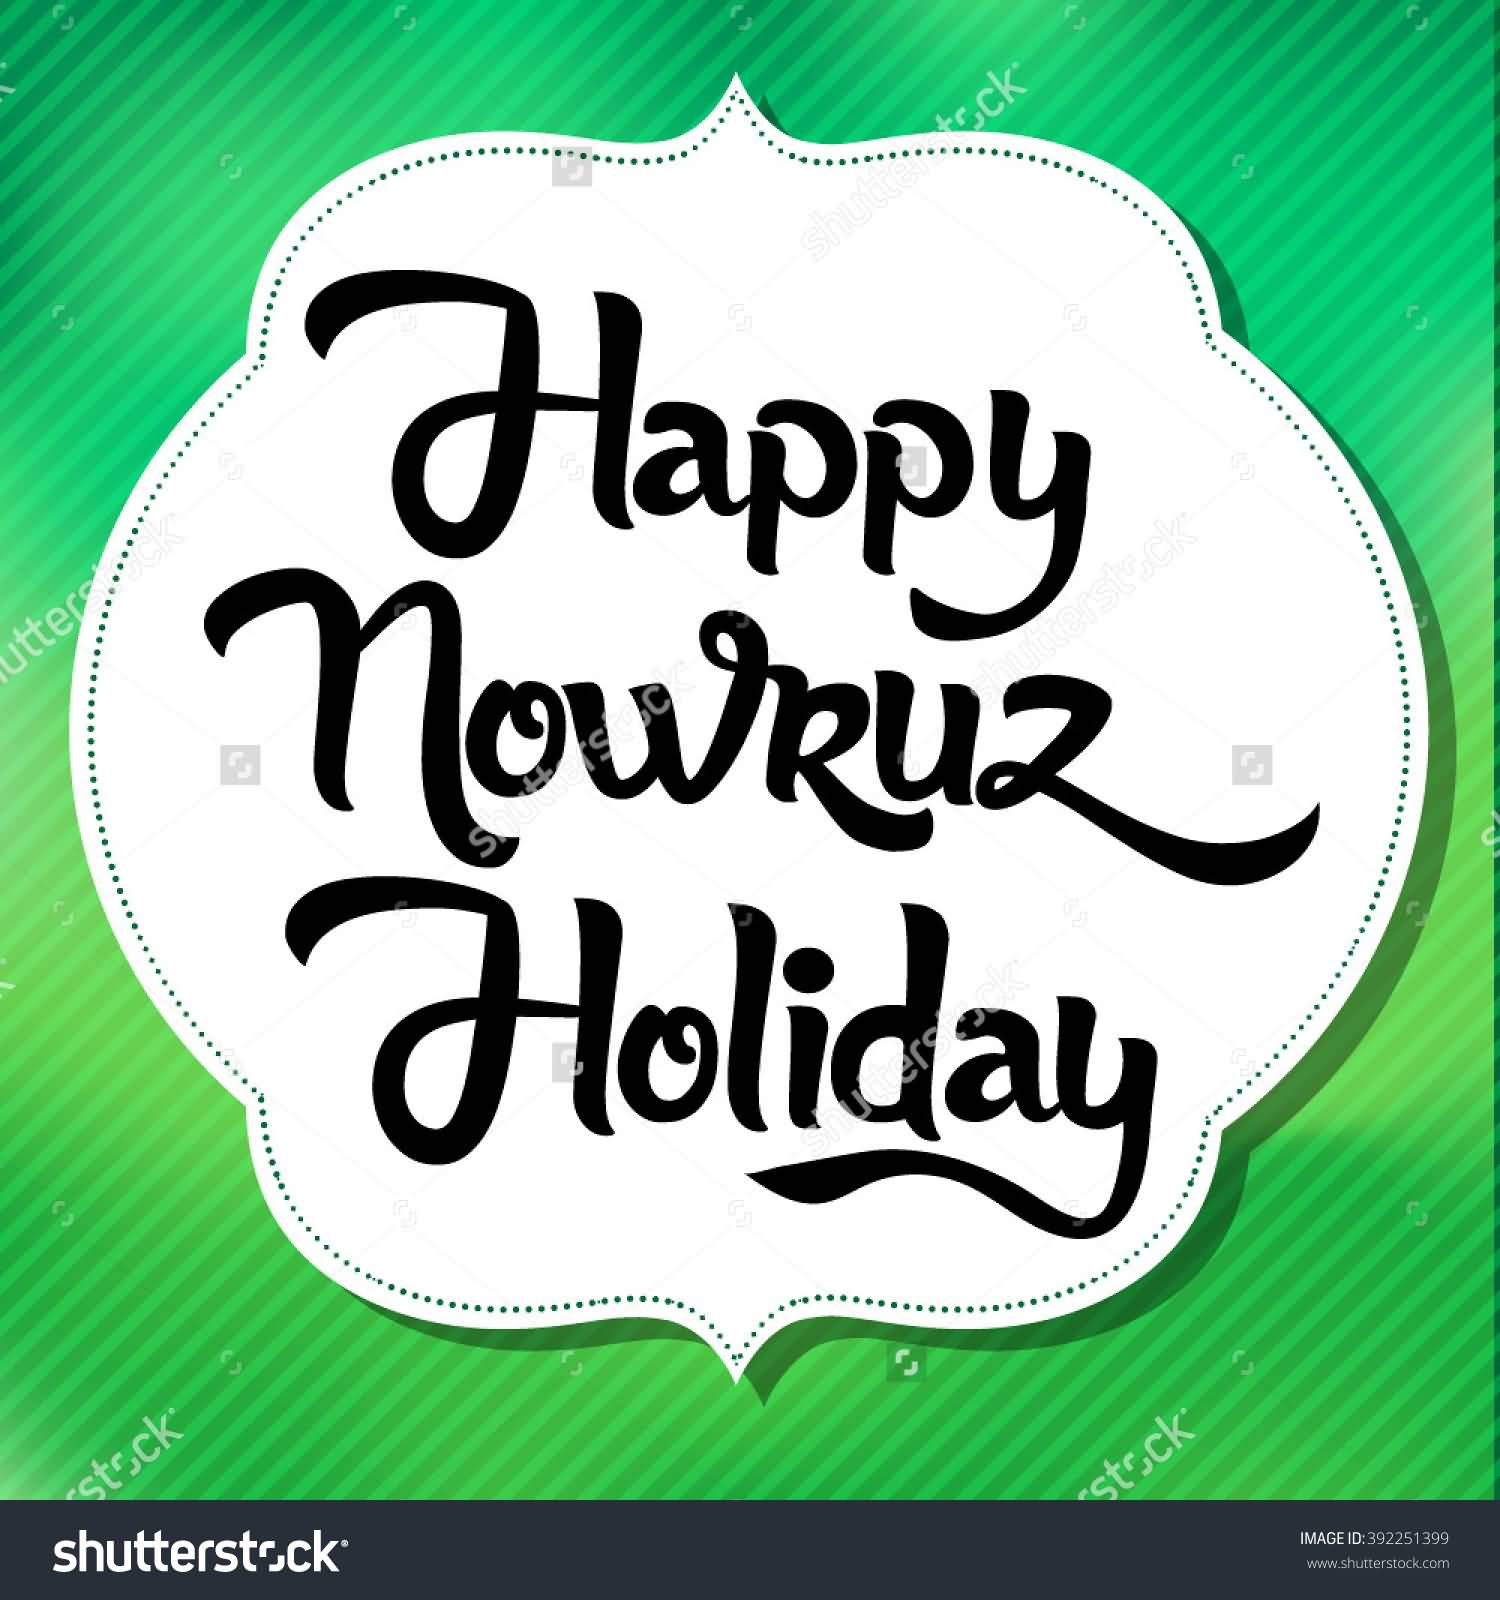 Happy Nowruz Holiday Greetings Card